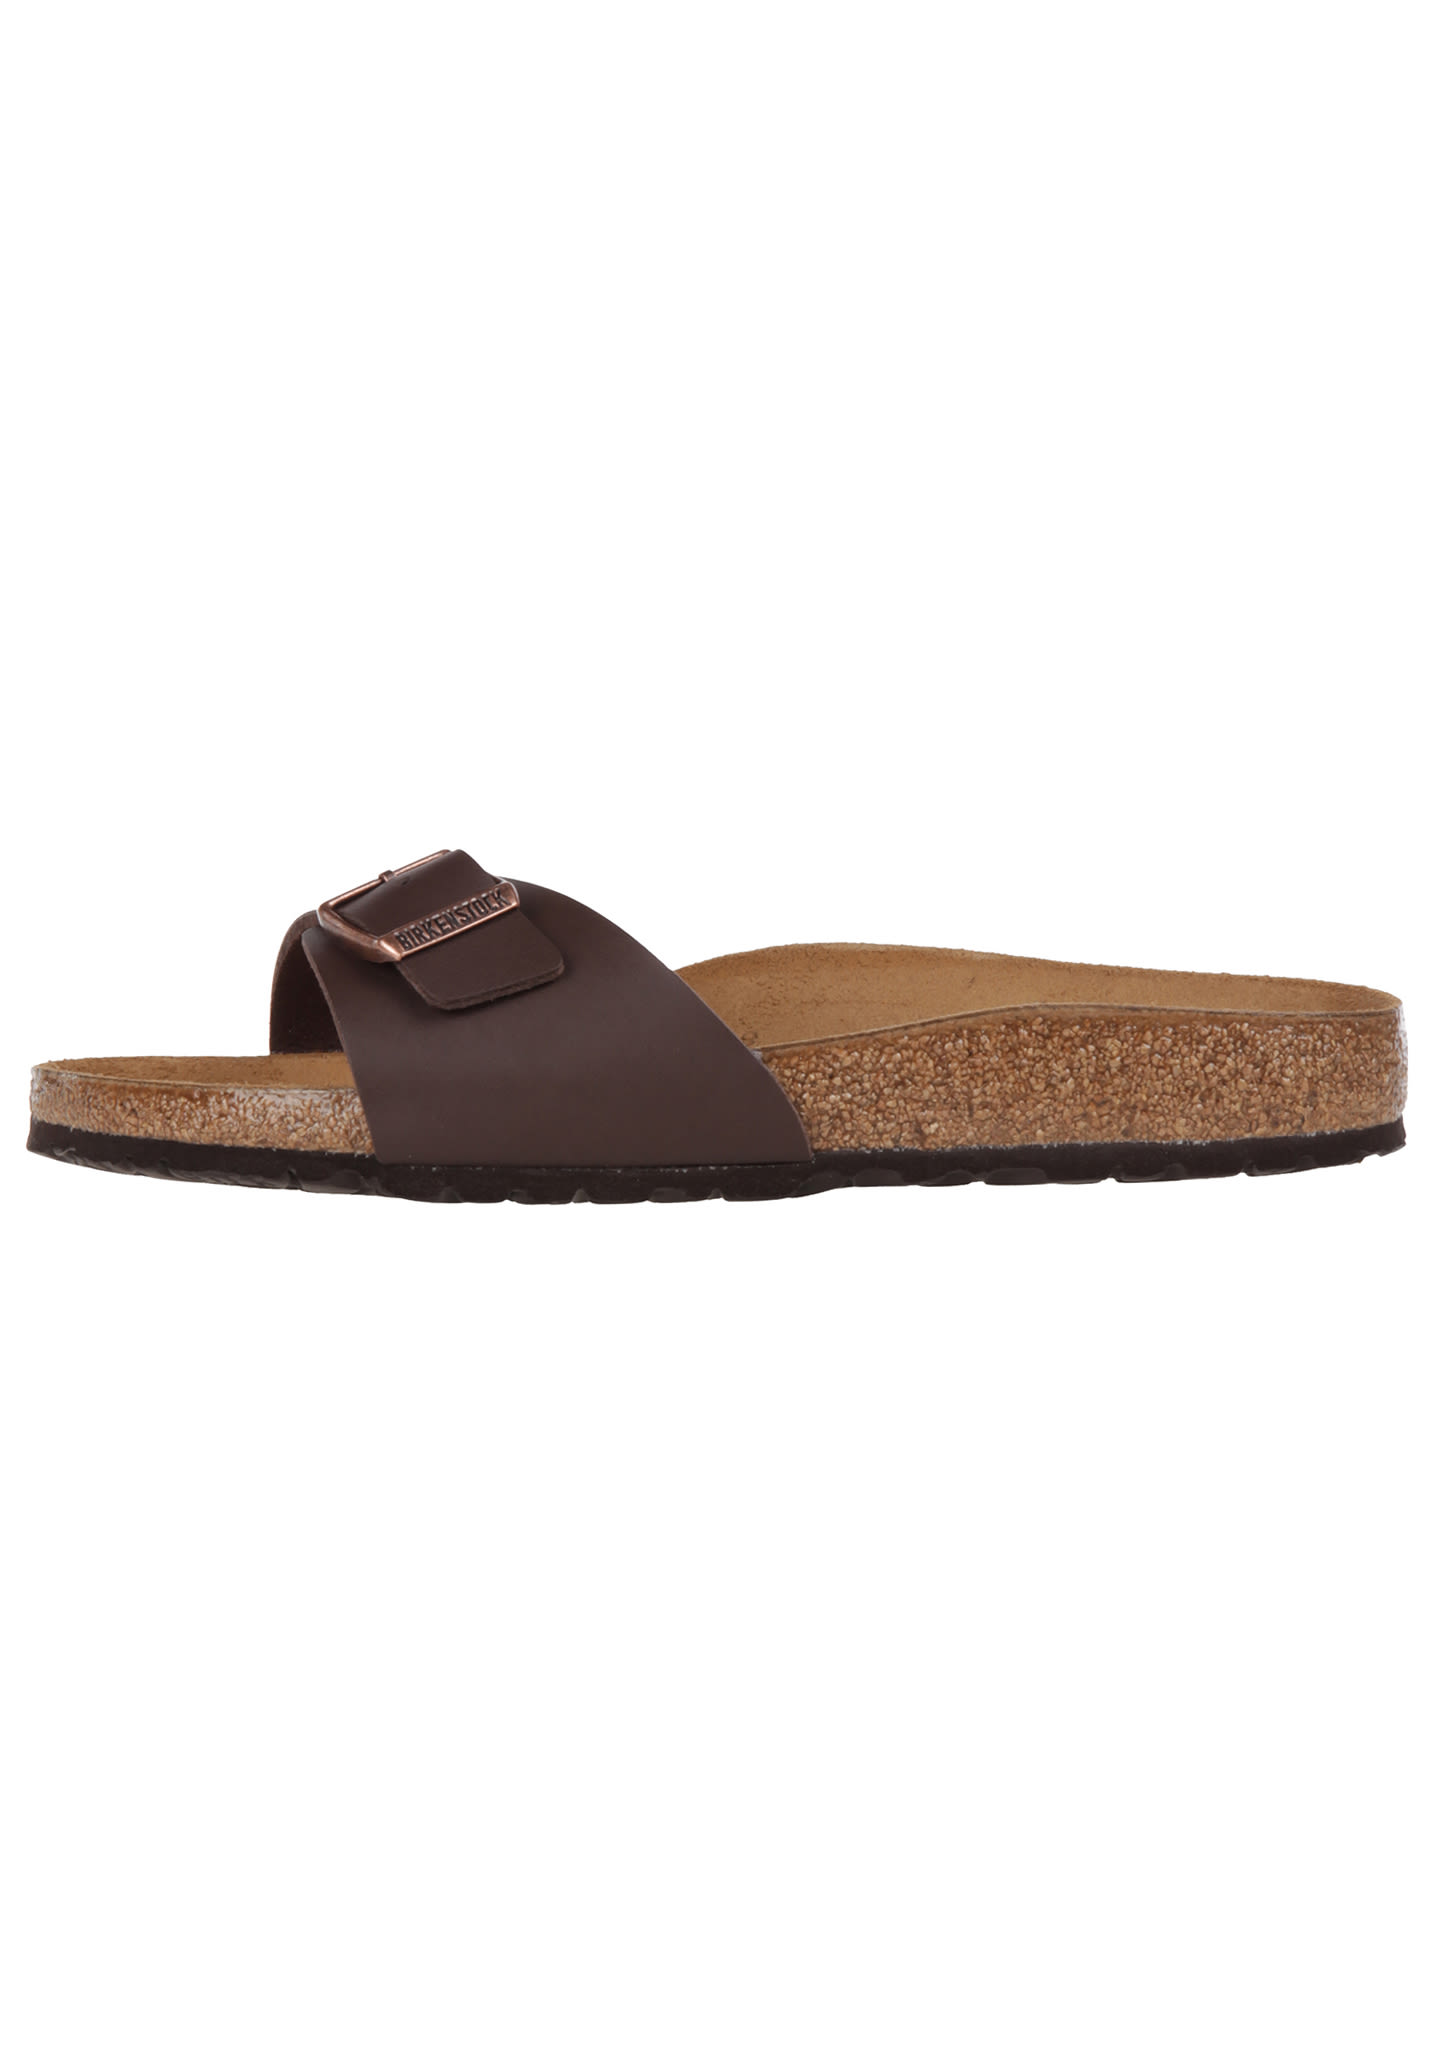 a50b1ff978dfe8 Birkenstock Madrid BF - Sandals for Women - Brown - Planet Sports